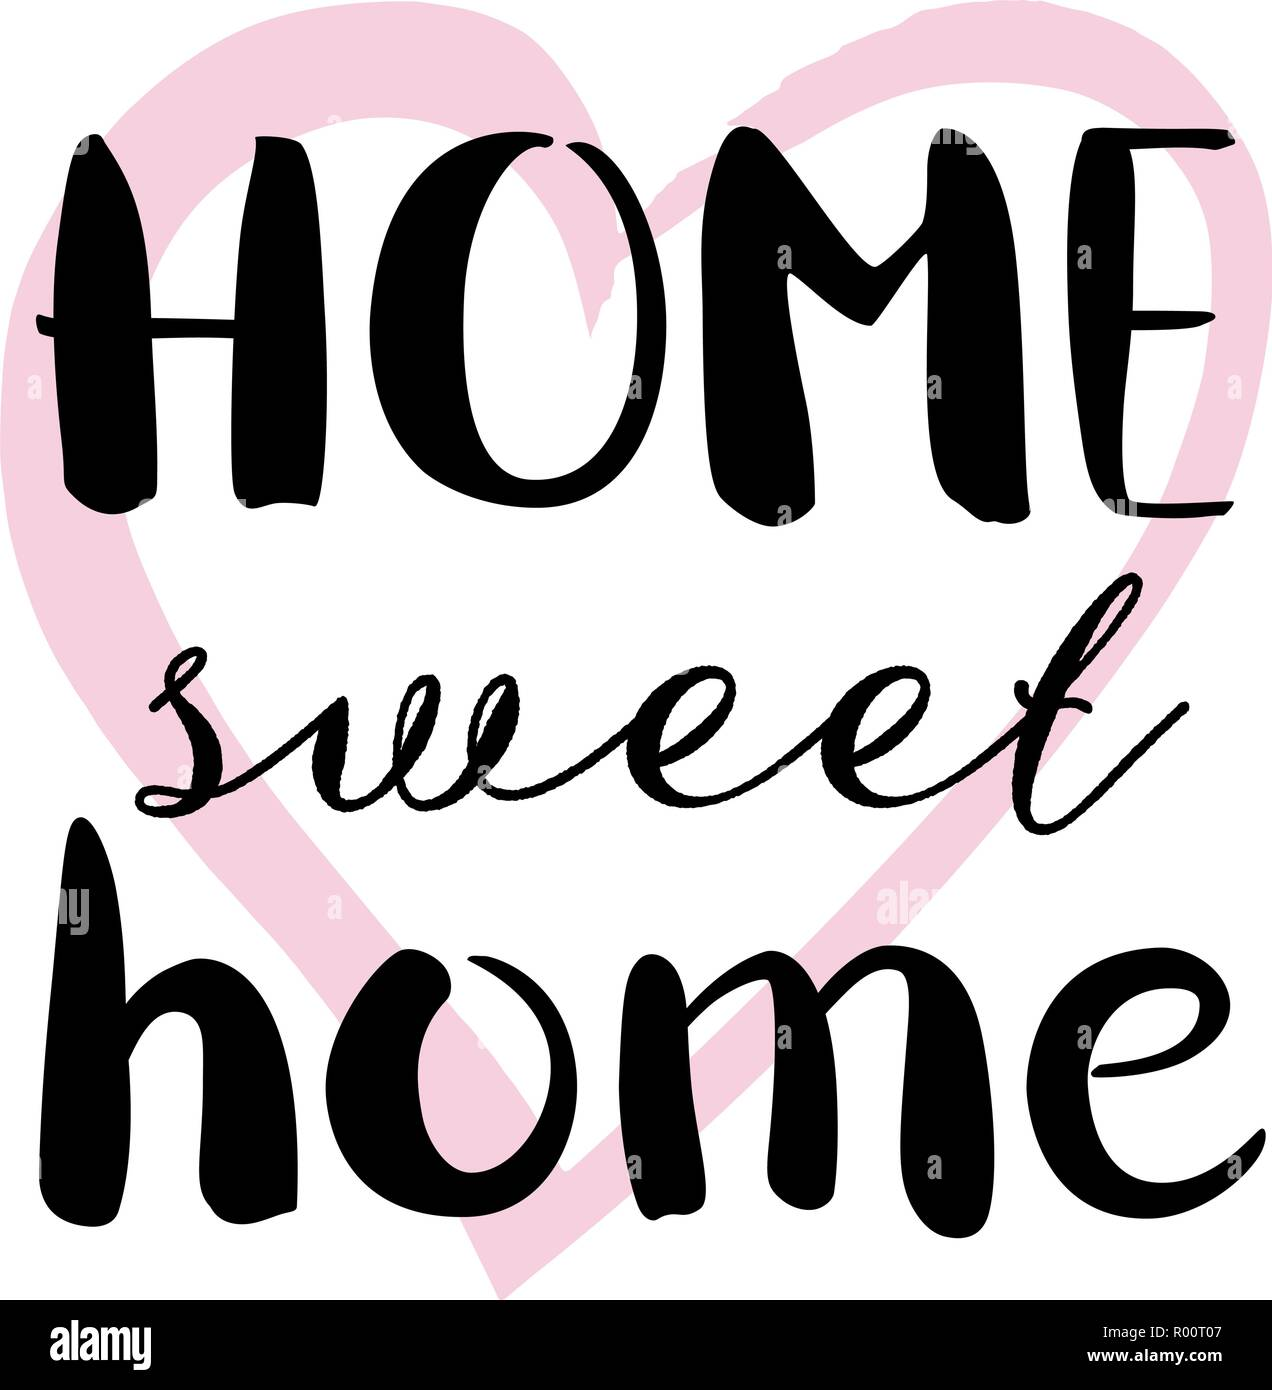 Home Sweet Home, a decorative design with hand drawn lettering, vector illustration - Stock Vector